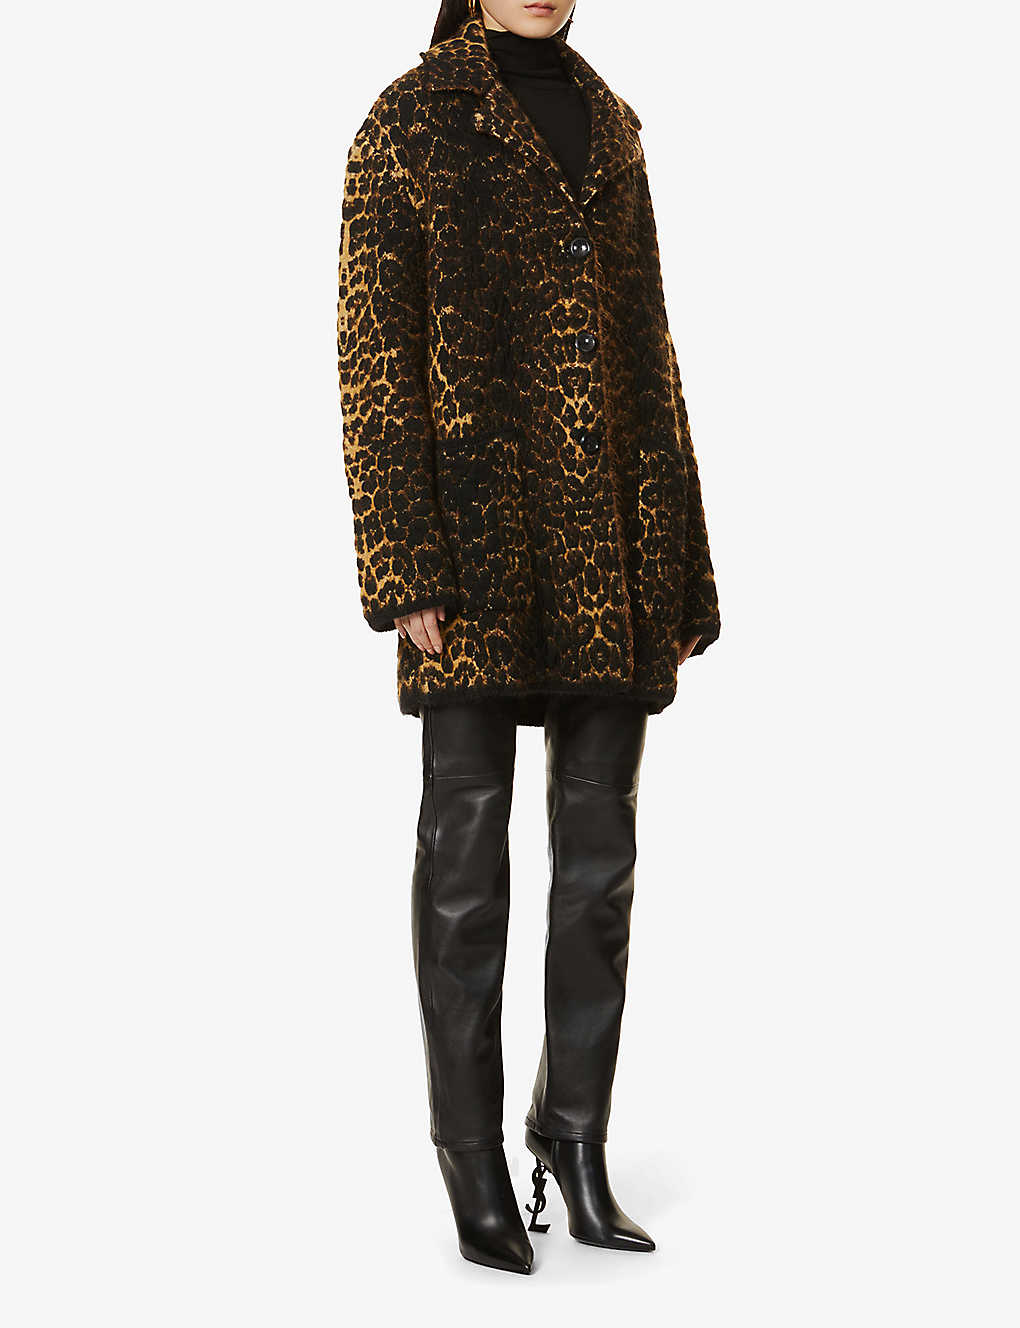 SAINT LAURENT: Leopard-print wool-blend coat